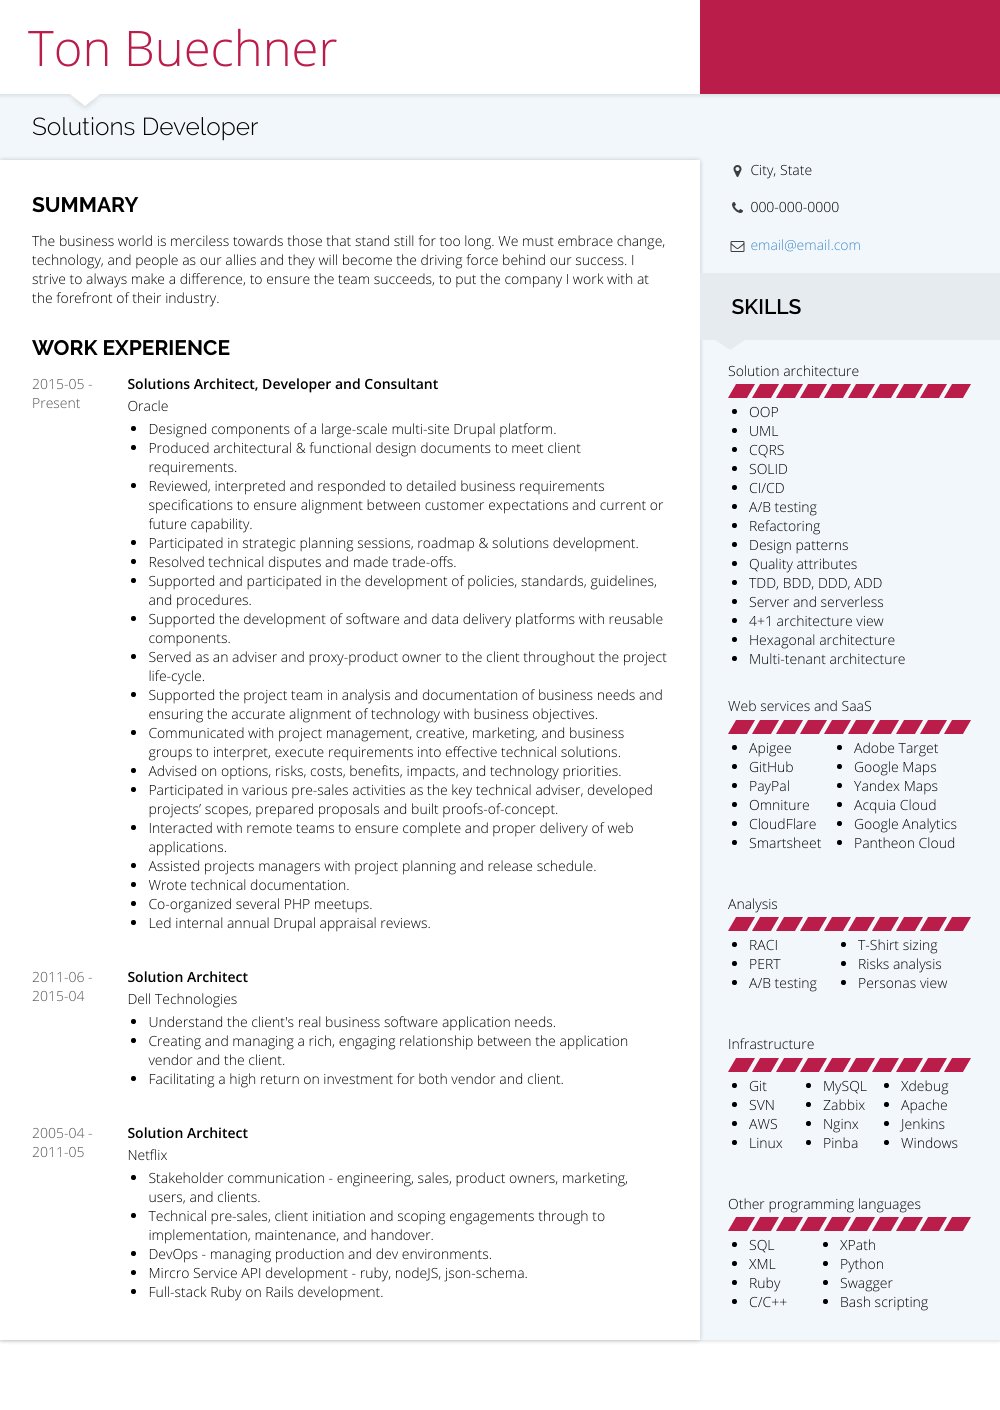 solution architect resume - Monza berglauf-verband com